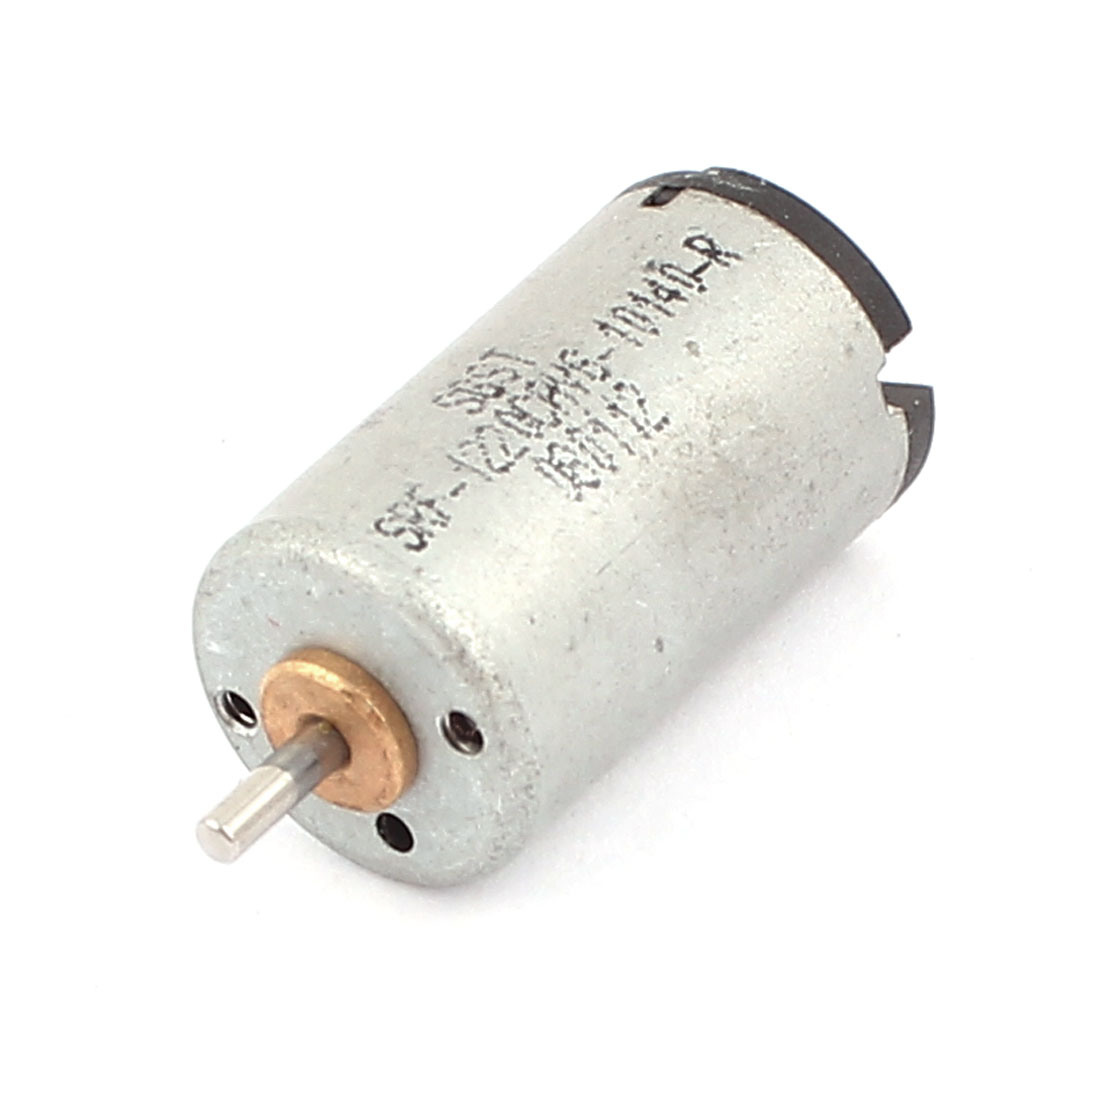 RC Model Toys DIY Electrical Mini Motor 12x20mm DC1.25-3.7V 22000RPM